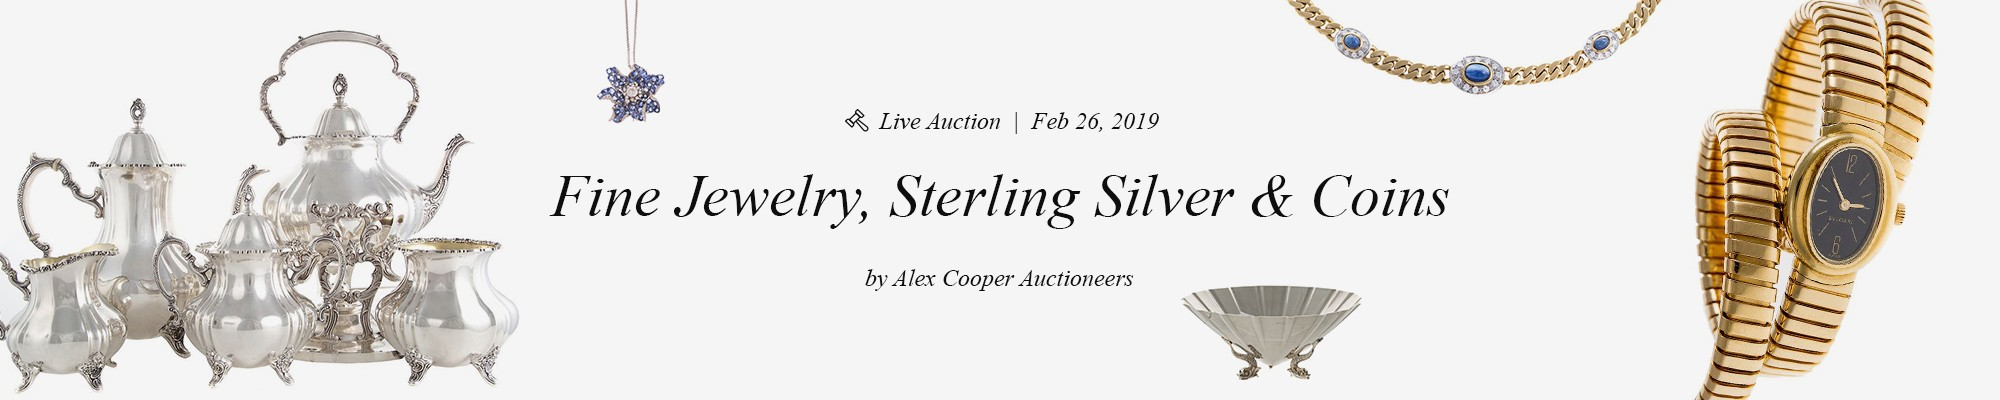 fine-jewelry-sterling-silver-coins-alex-cooper